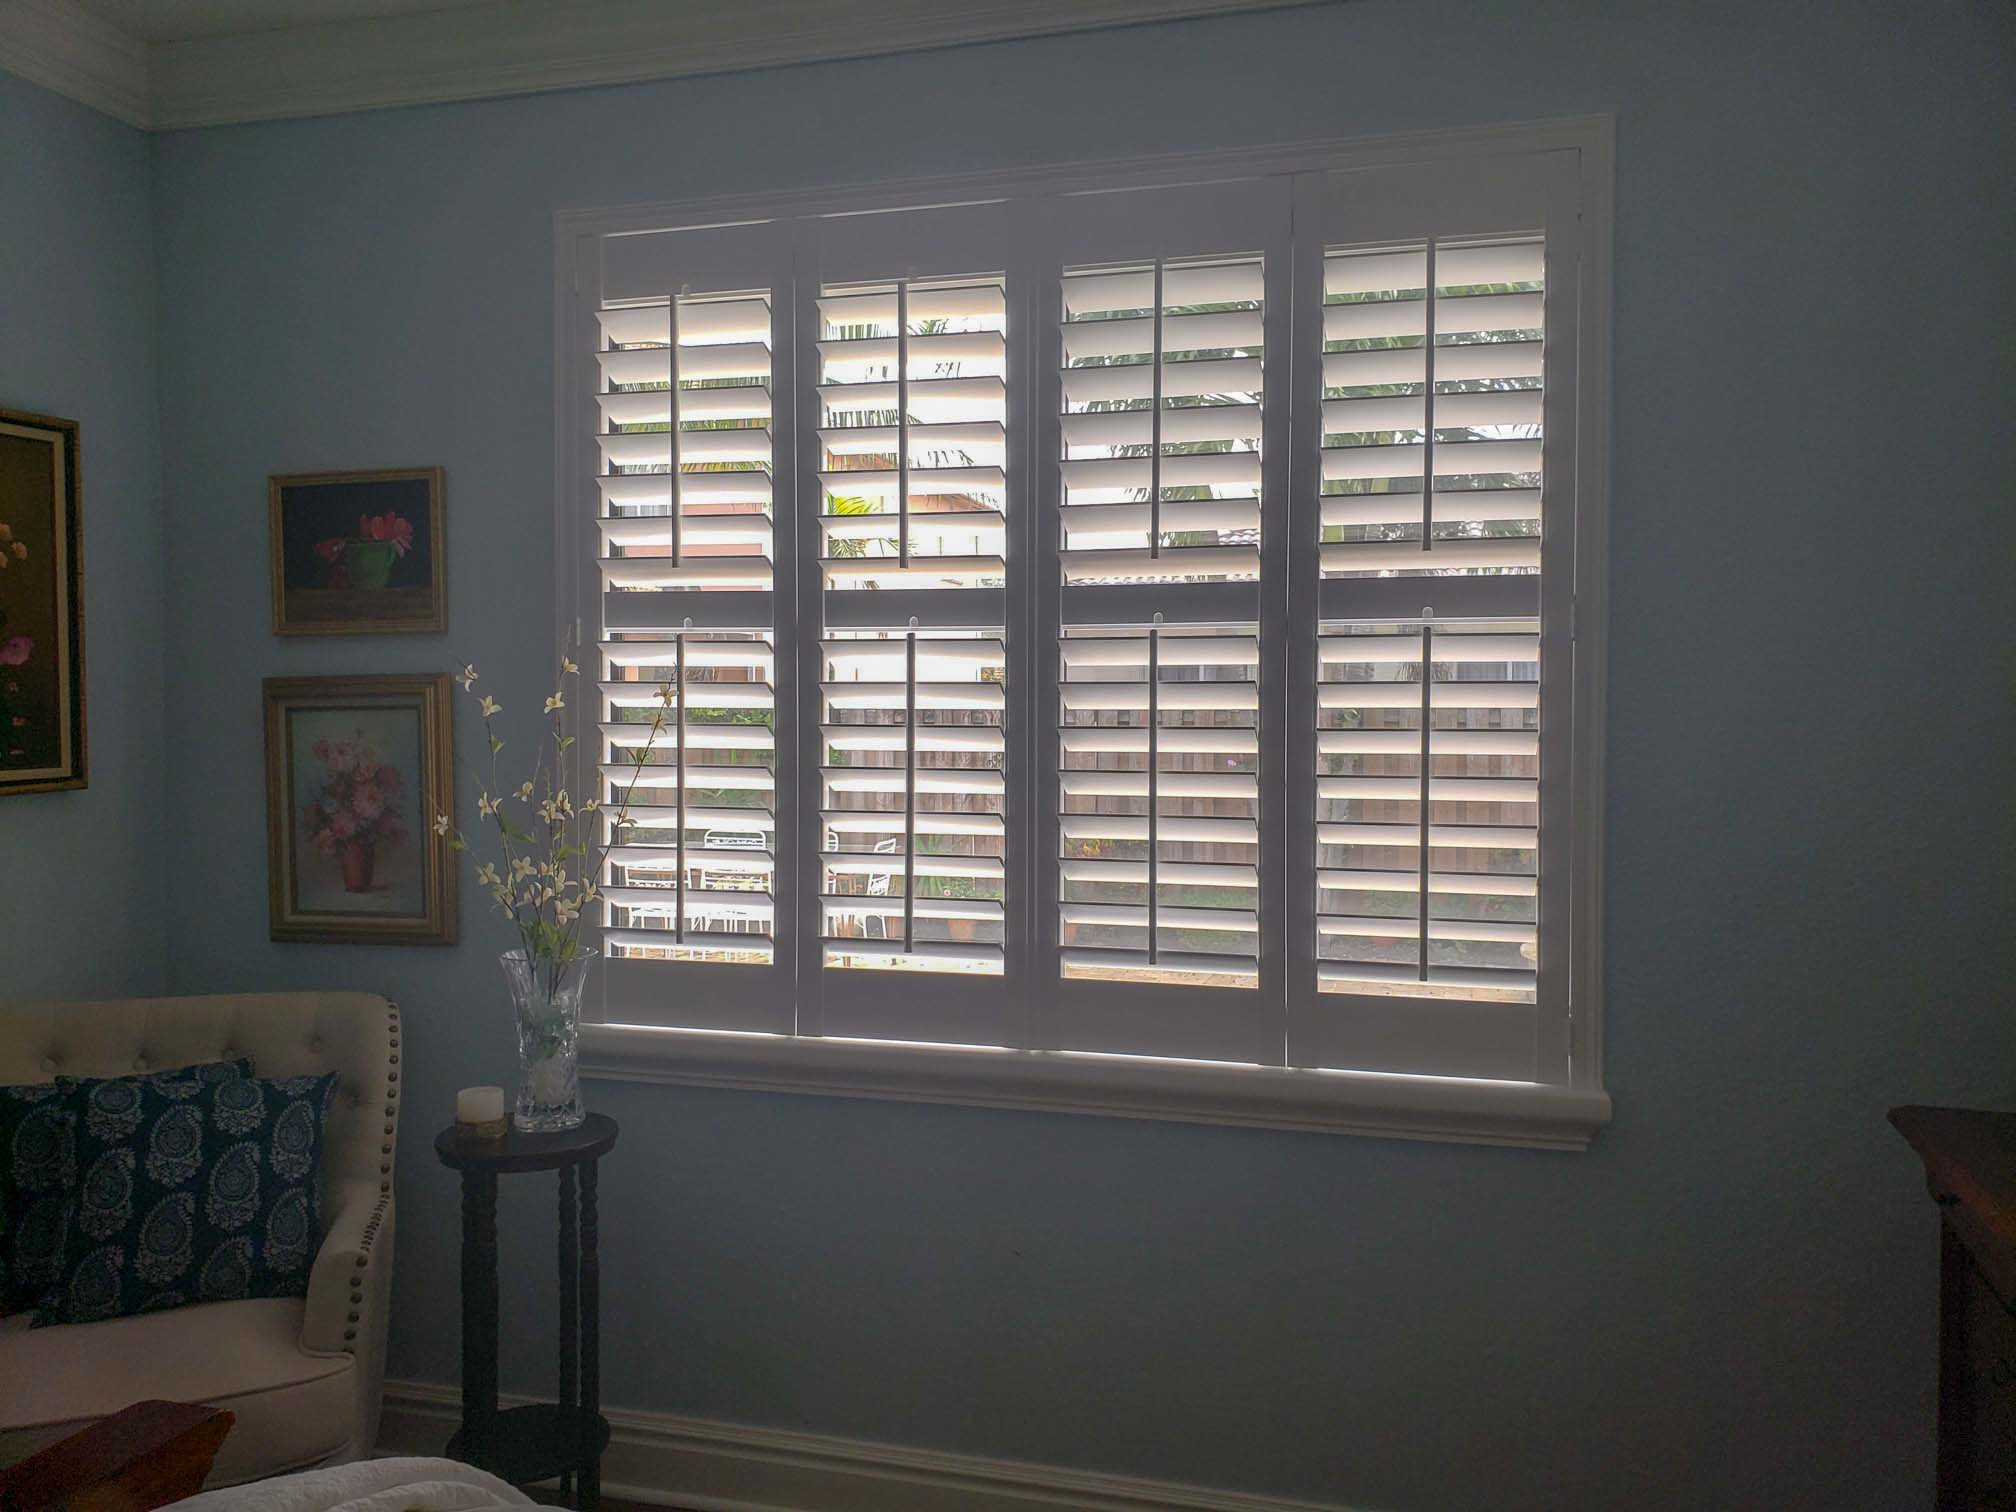 plantation shutters gallery PLANTATION SHUTTERS GALLERY 20180601 151716